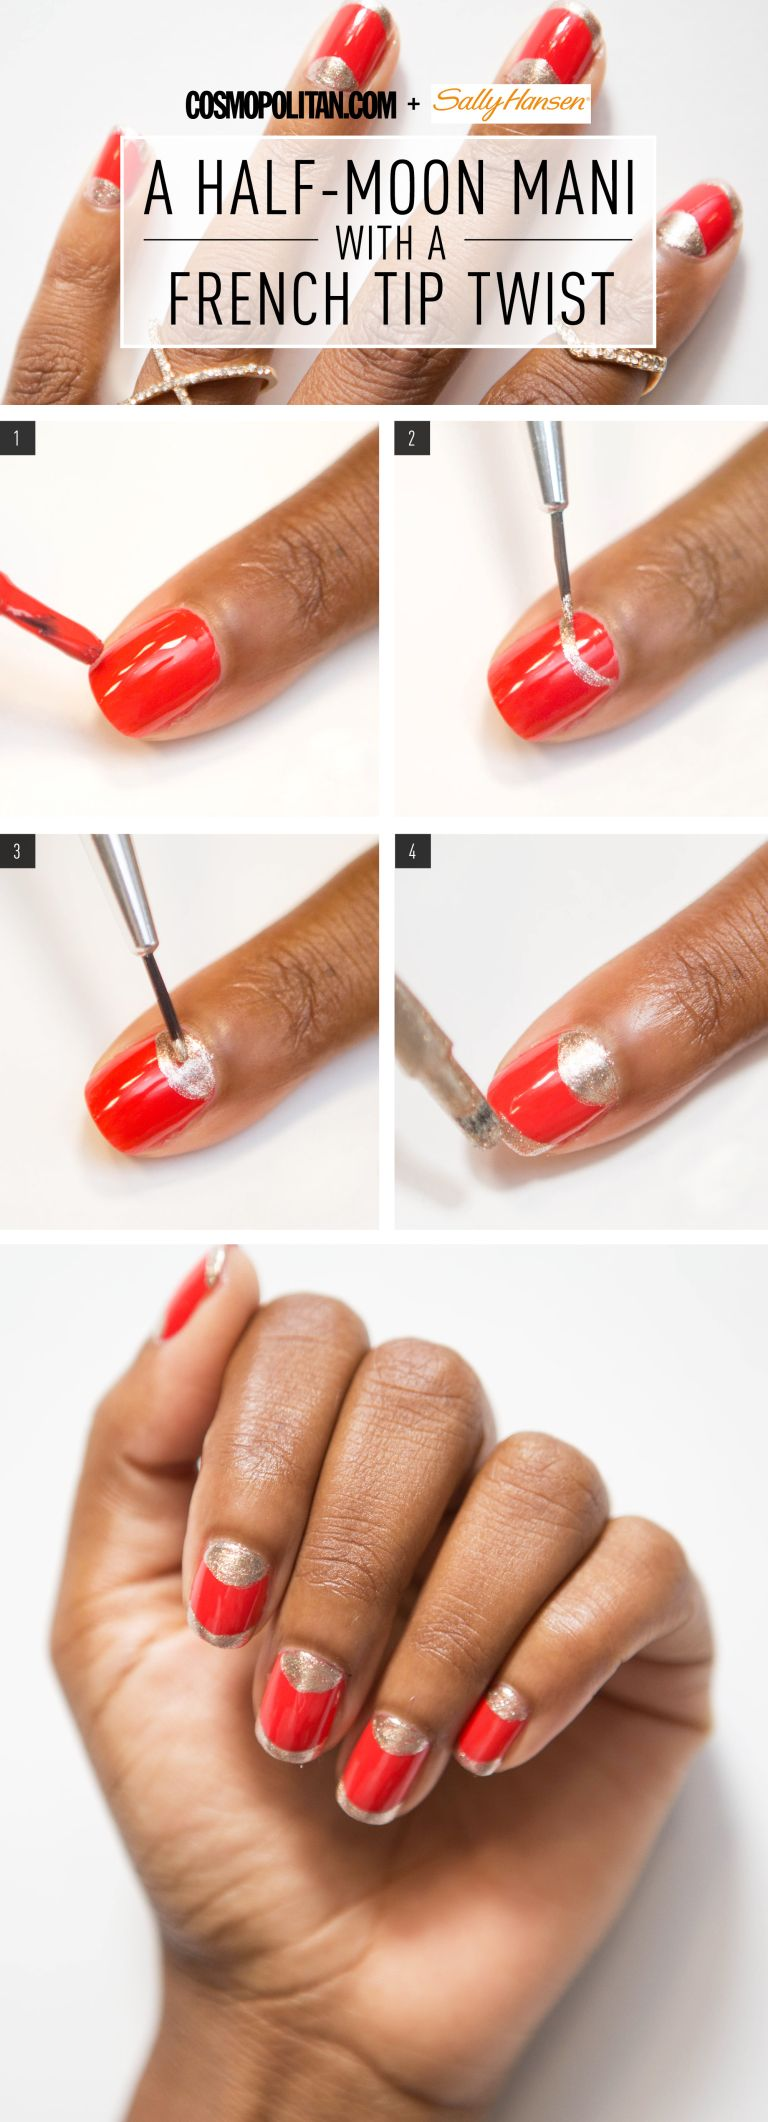 Nail Art How-To: Half-Moon With a French Tip Twist | Summer nail art ...